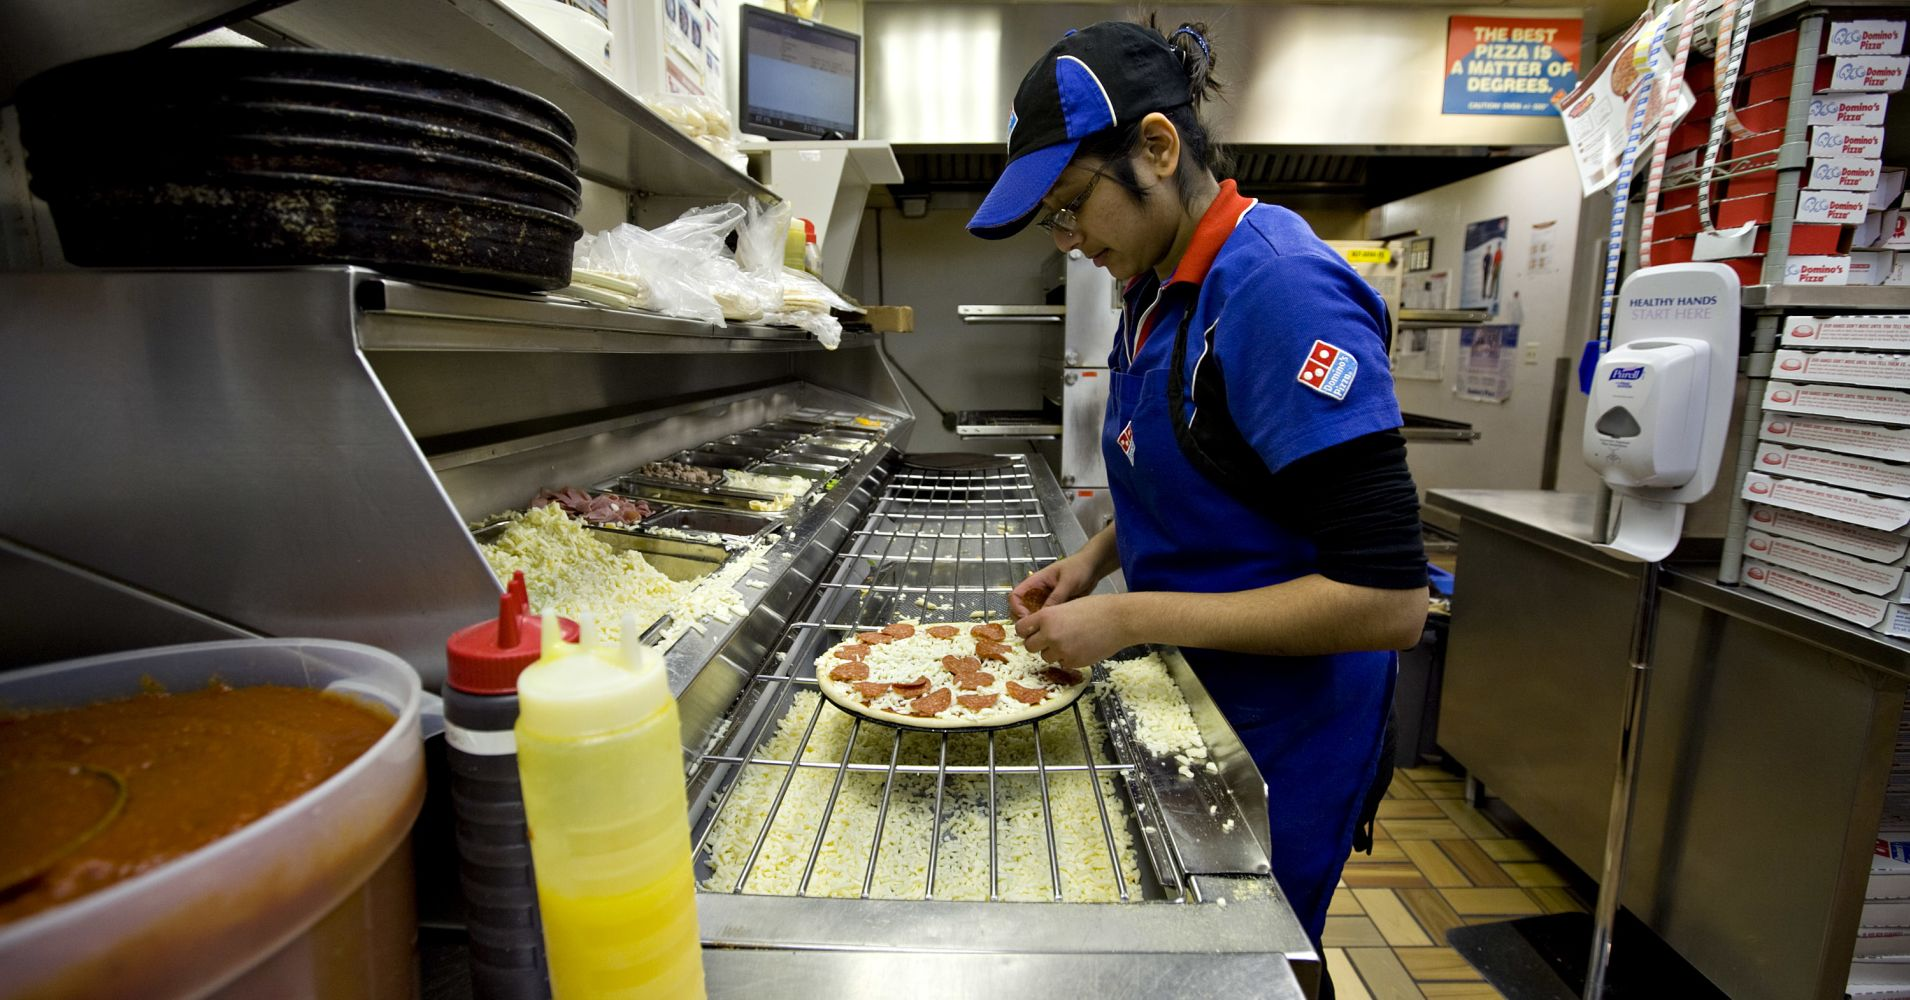 A worker puts pepperoni on a pizza inside a Domino's Pizza franchise in New York.